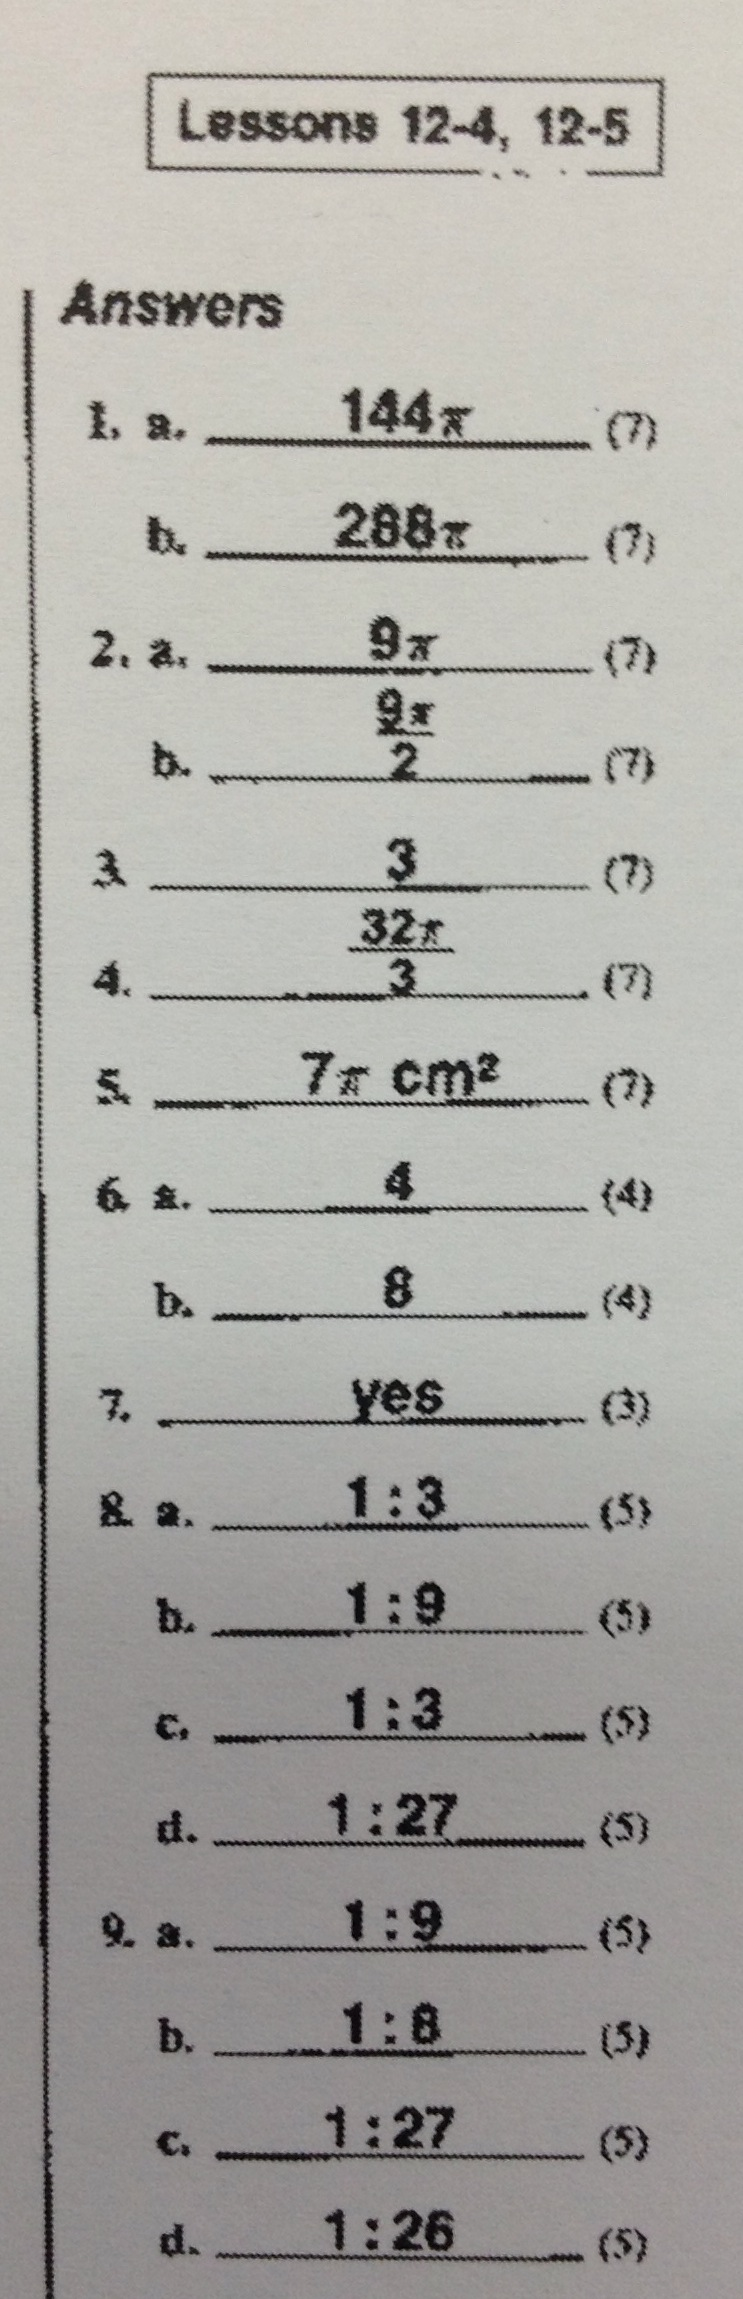 hight resolution of 8th Grade Math - Home